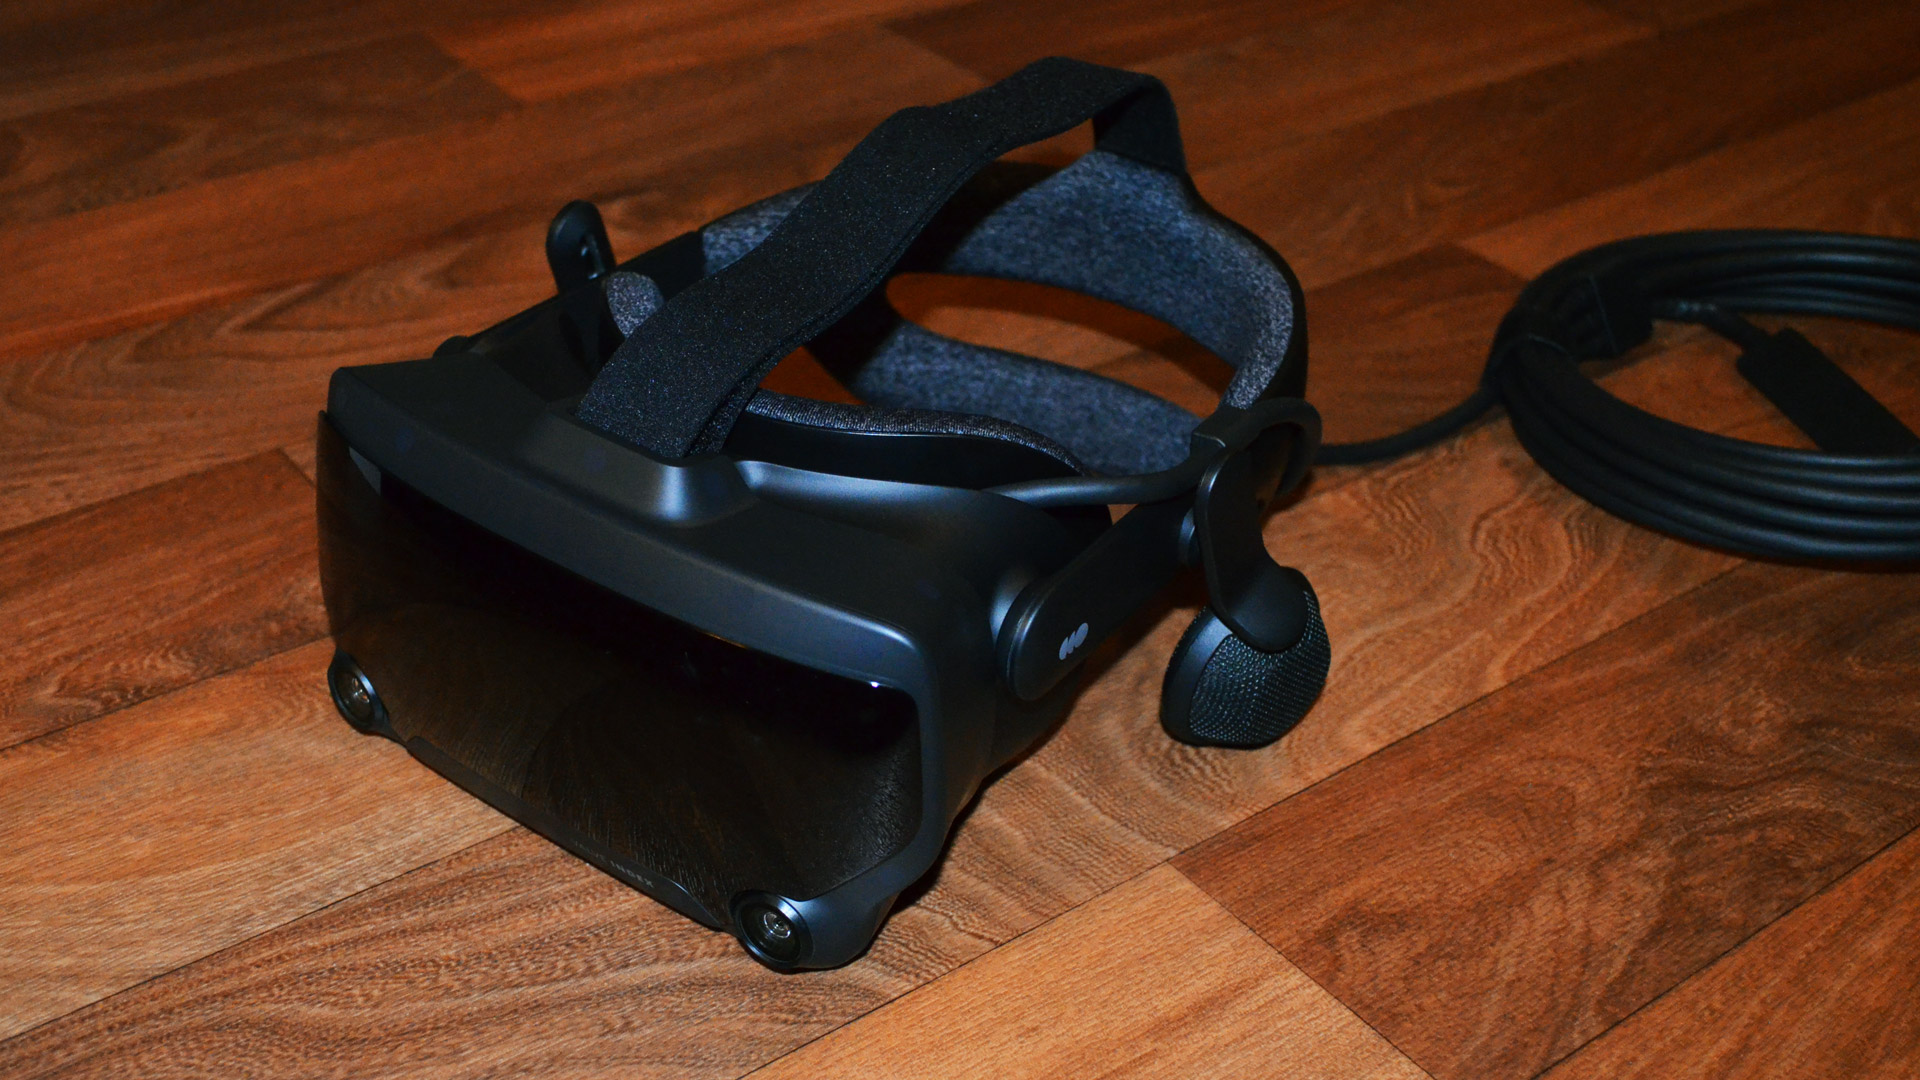 Valve Index Review – The Enthusiast's Choice